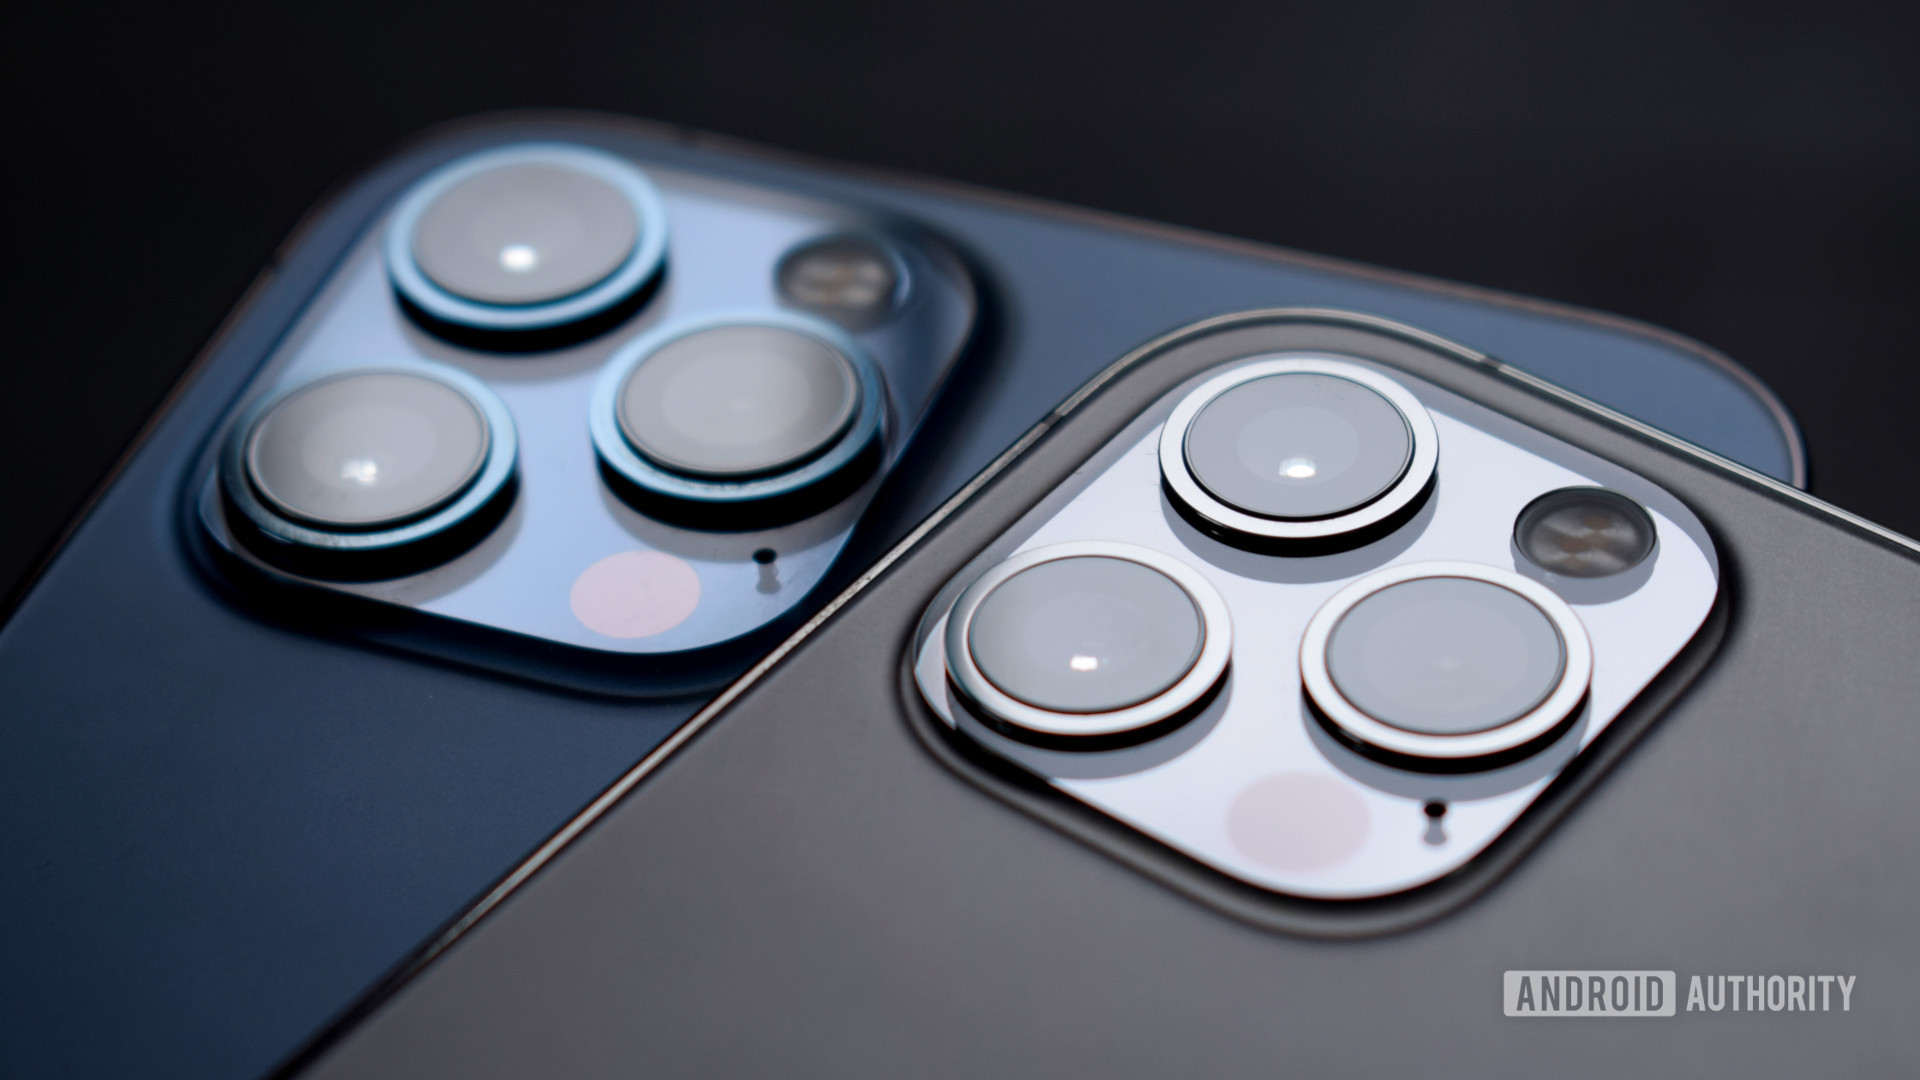 Apple-iPhone-12-Pro-vs-iPhone-12-Max-camera-3